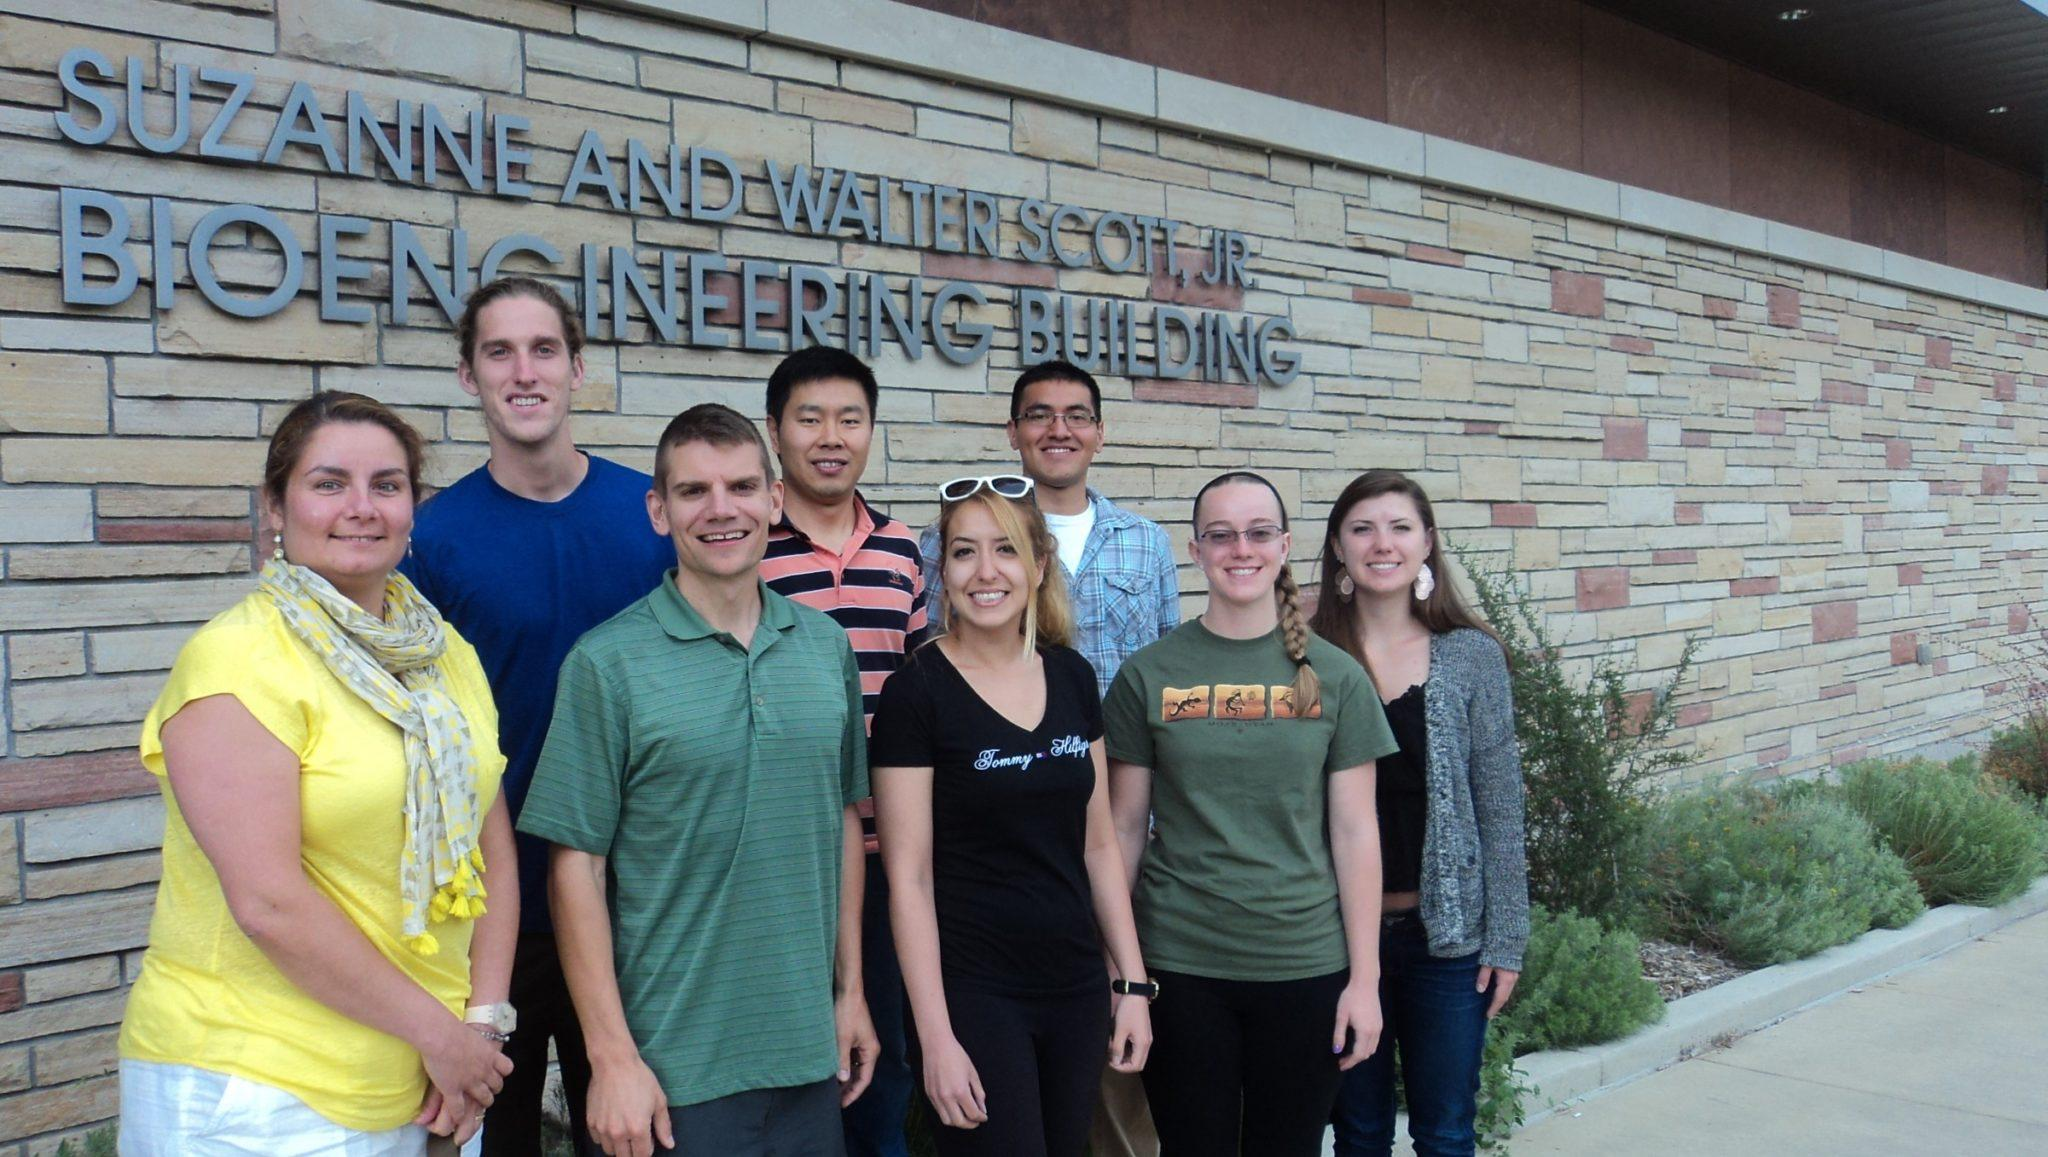 The Kipper research group poses in front of the Scott Bioengineering Building at Colorado State (2015).